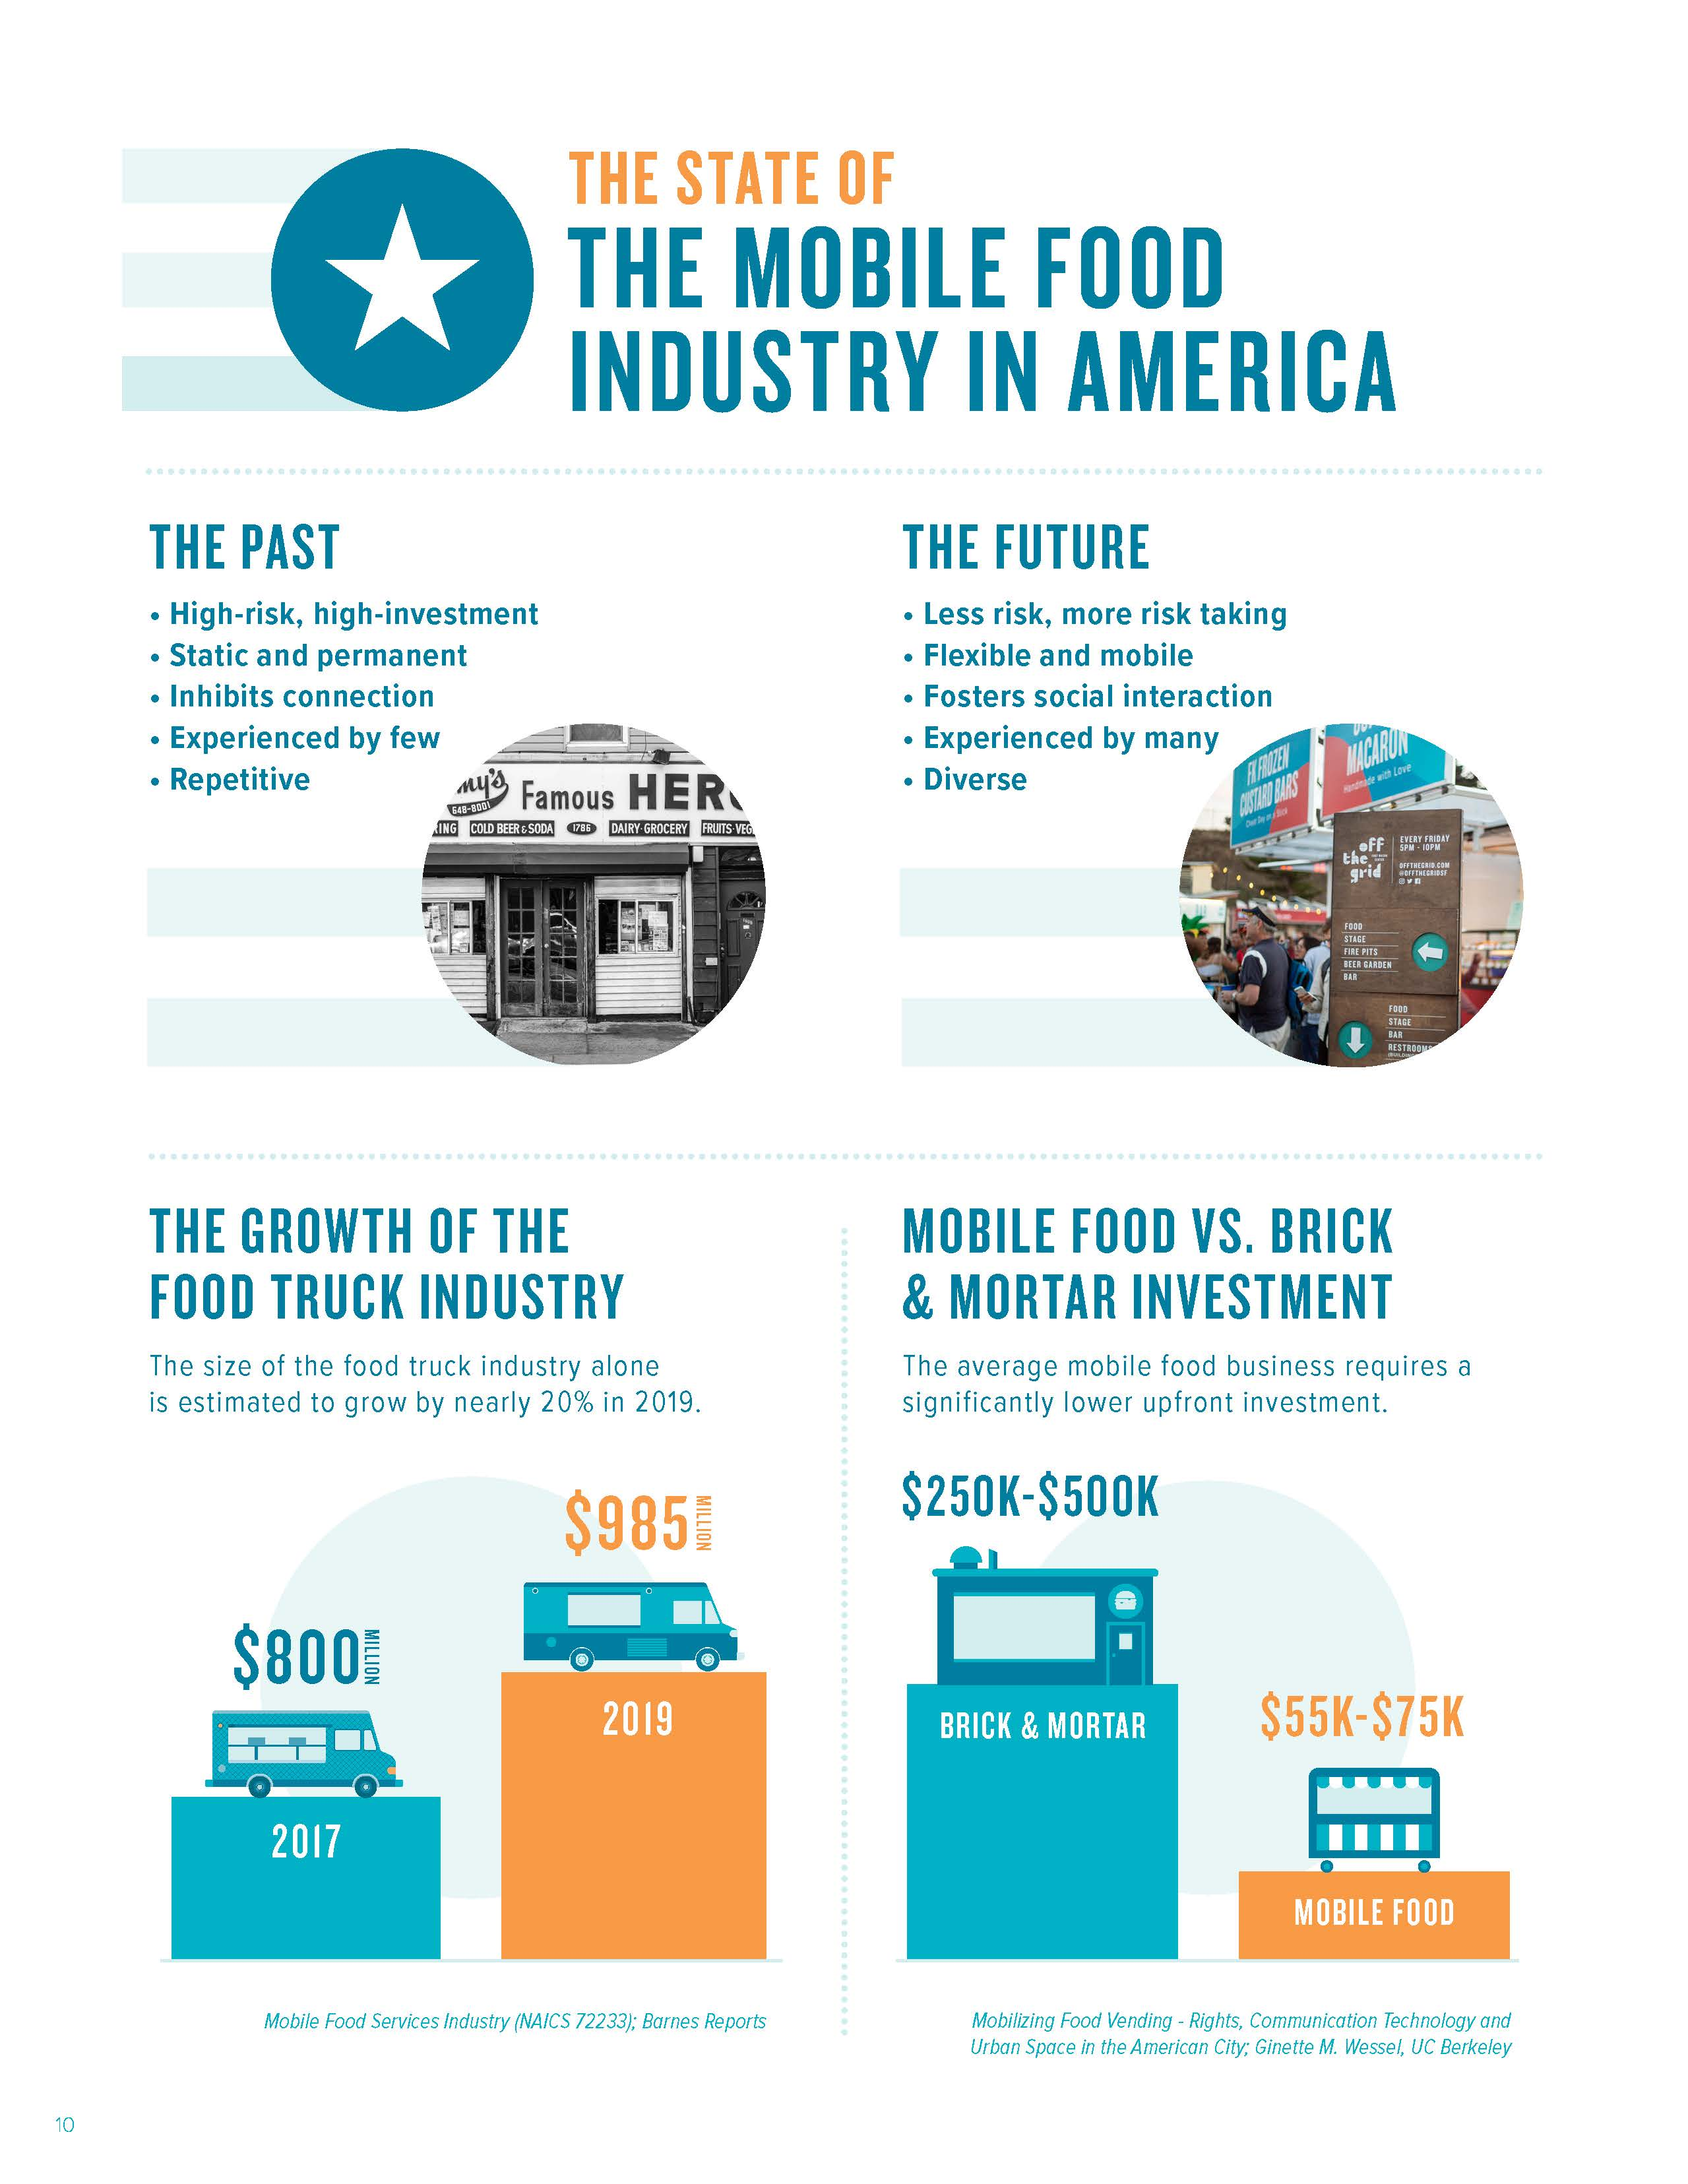 The State of the Mobile Food Industry in America Part 1